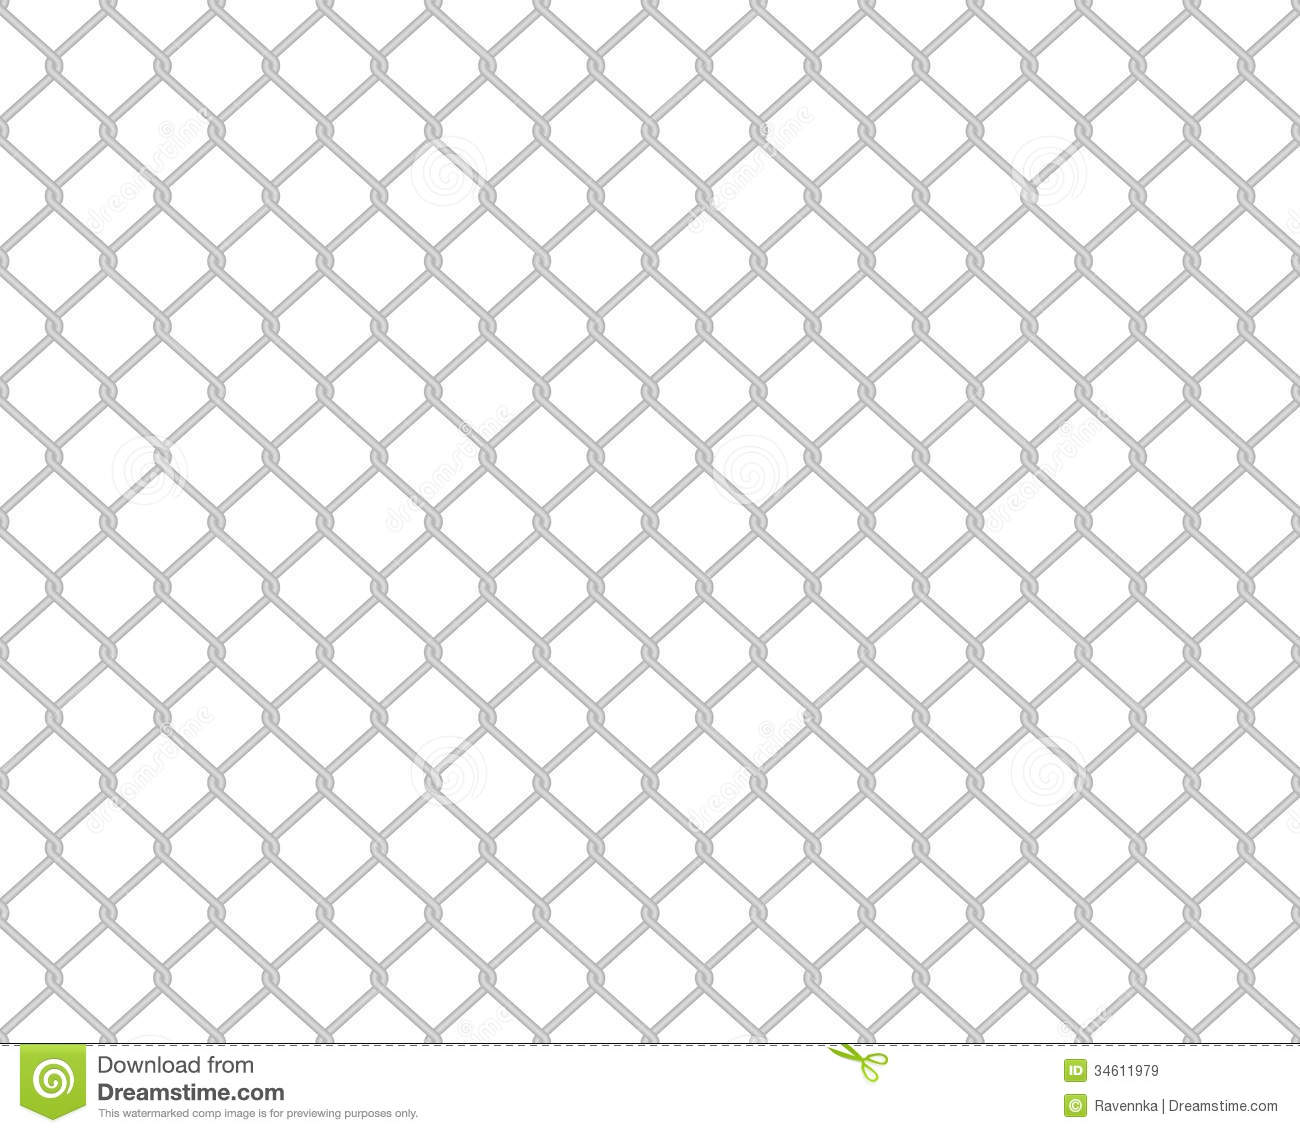 Wired fence pattern stock vector. Illustration of cage - 34611979